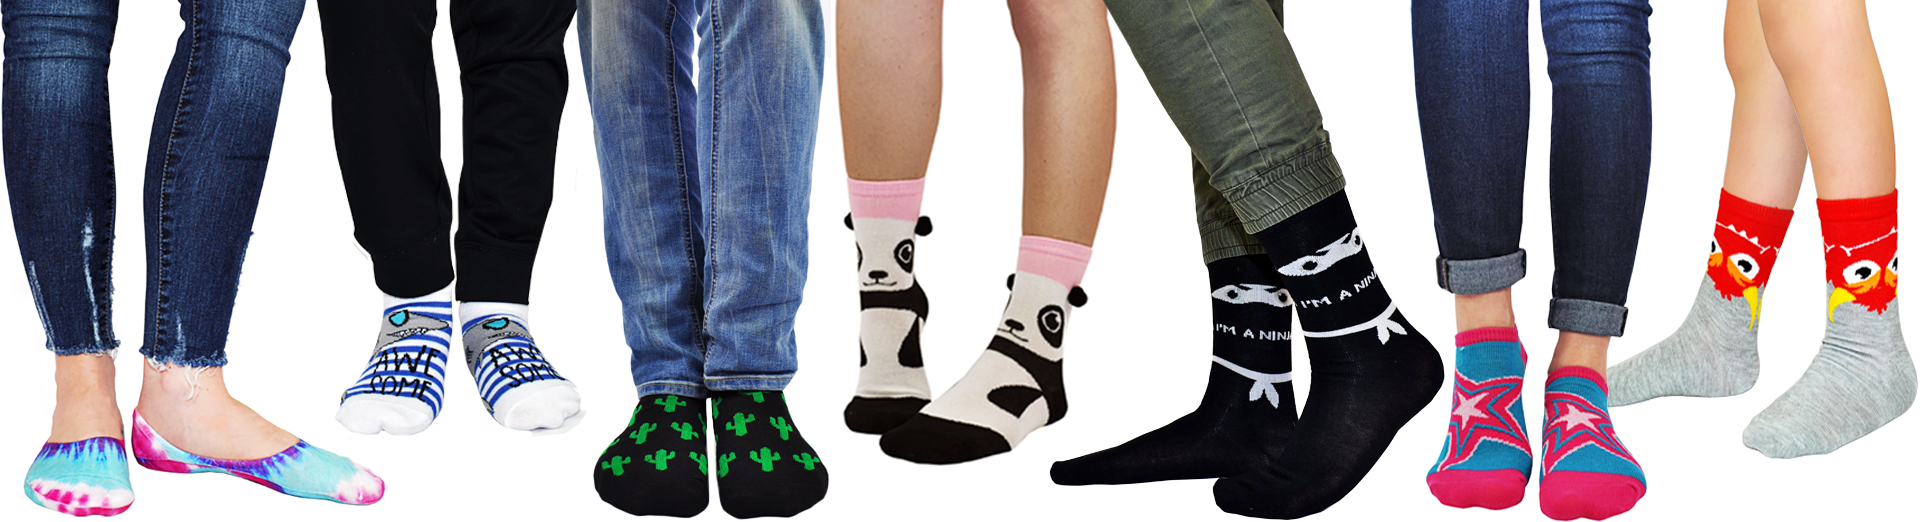 A group of different people wearing awesome socks against a white background